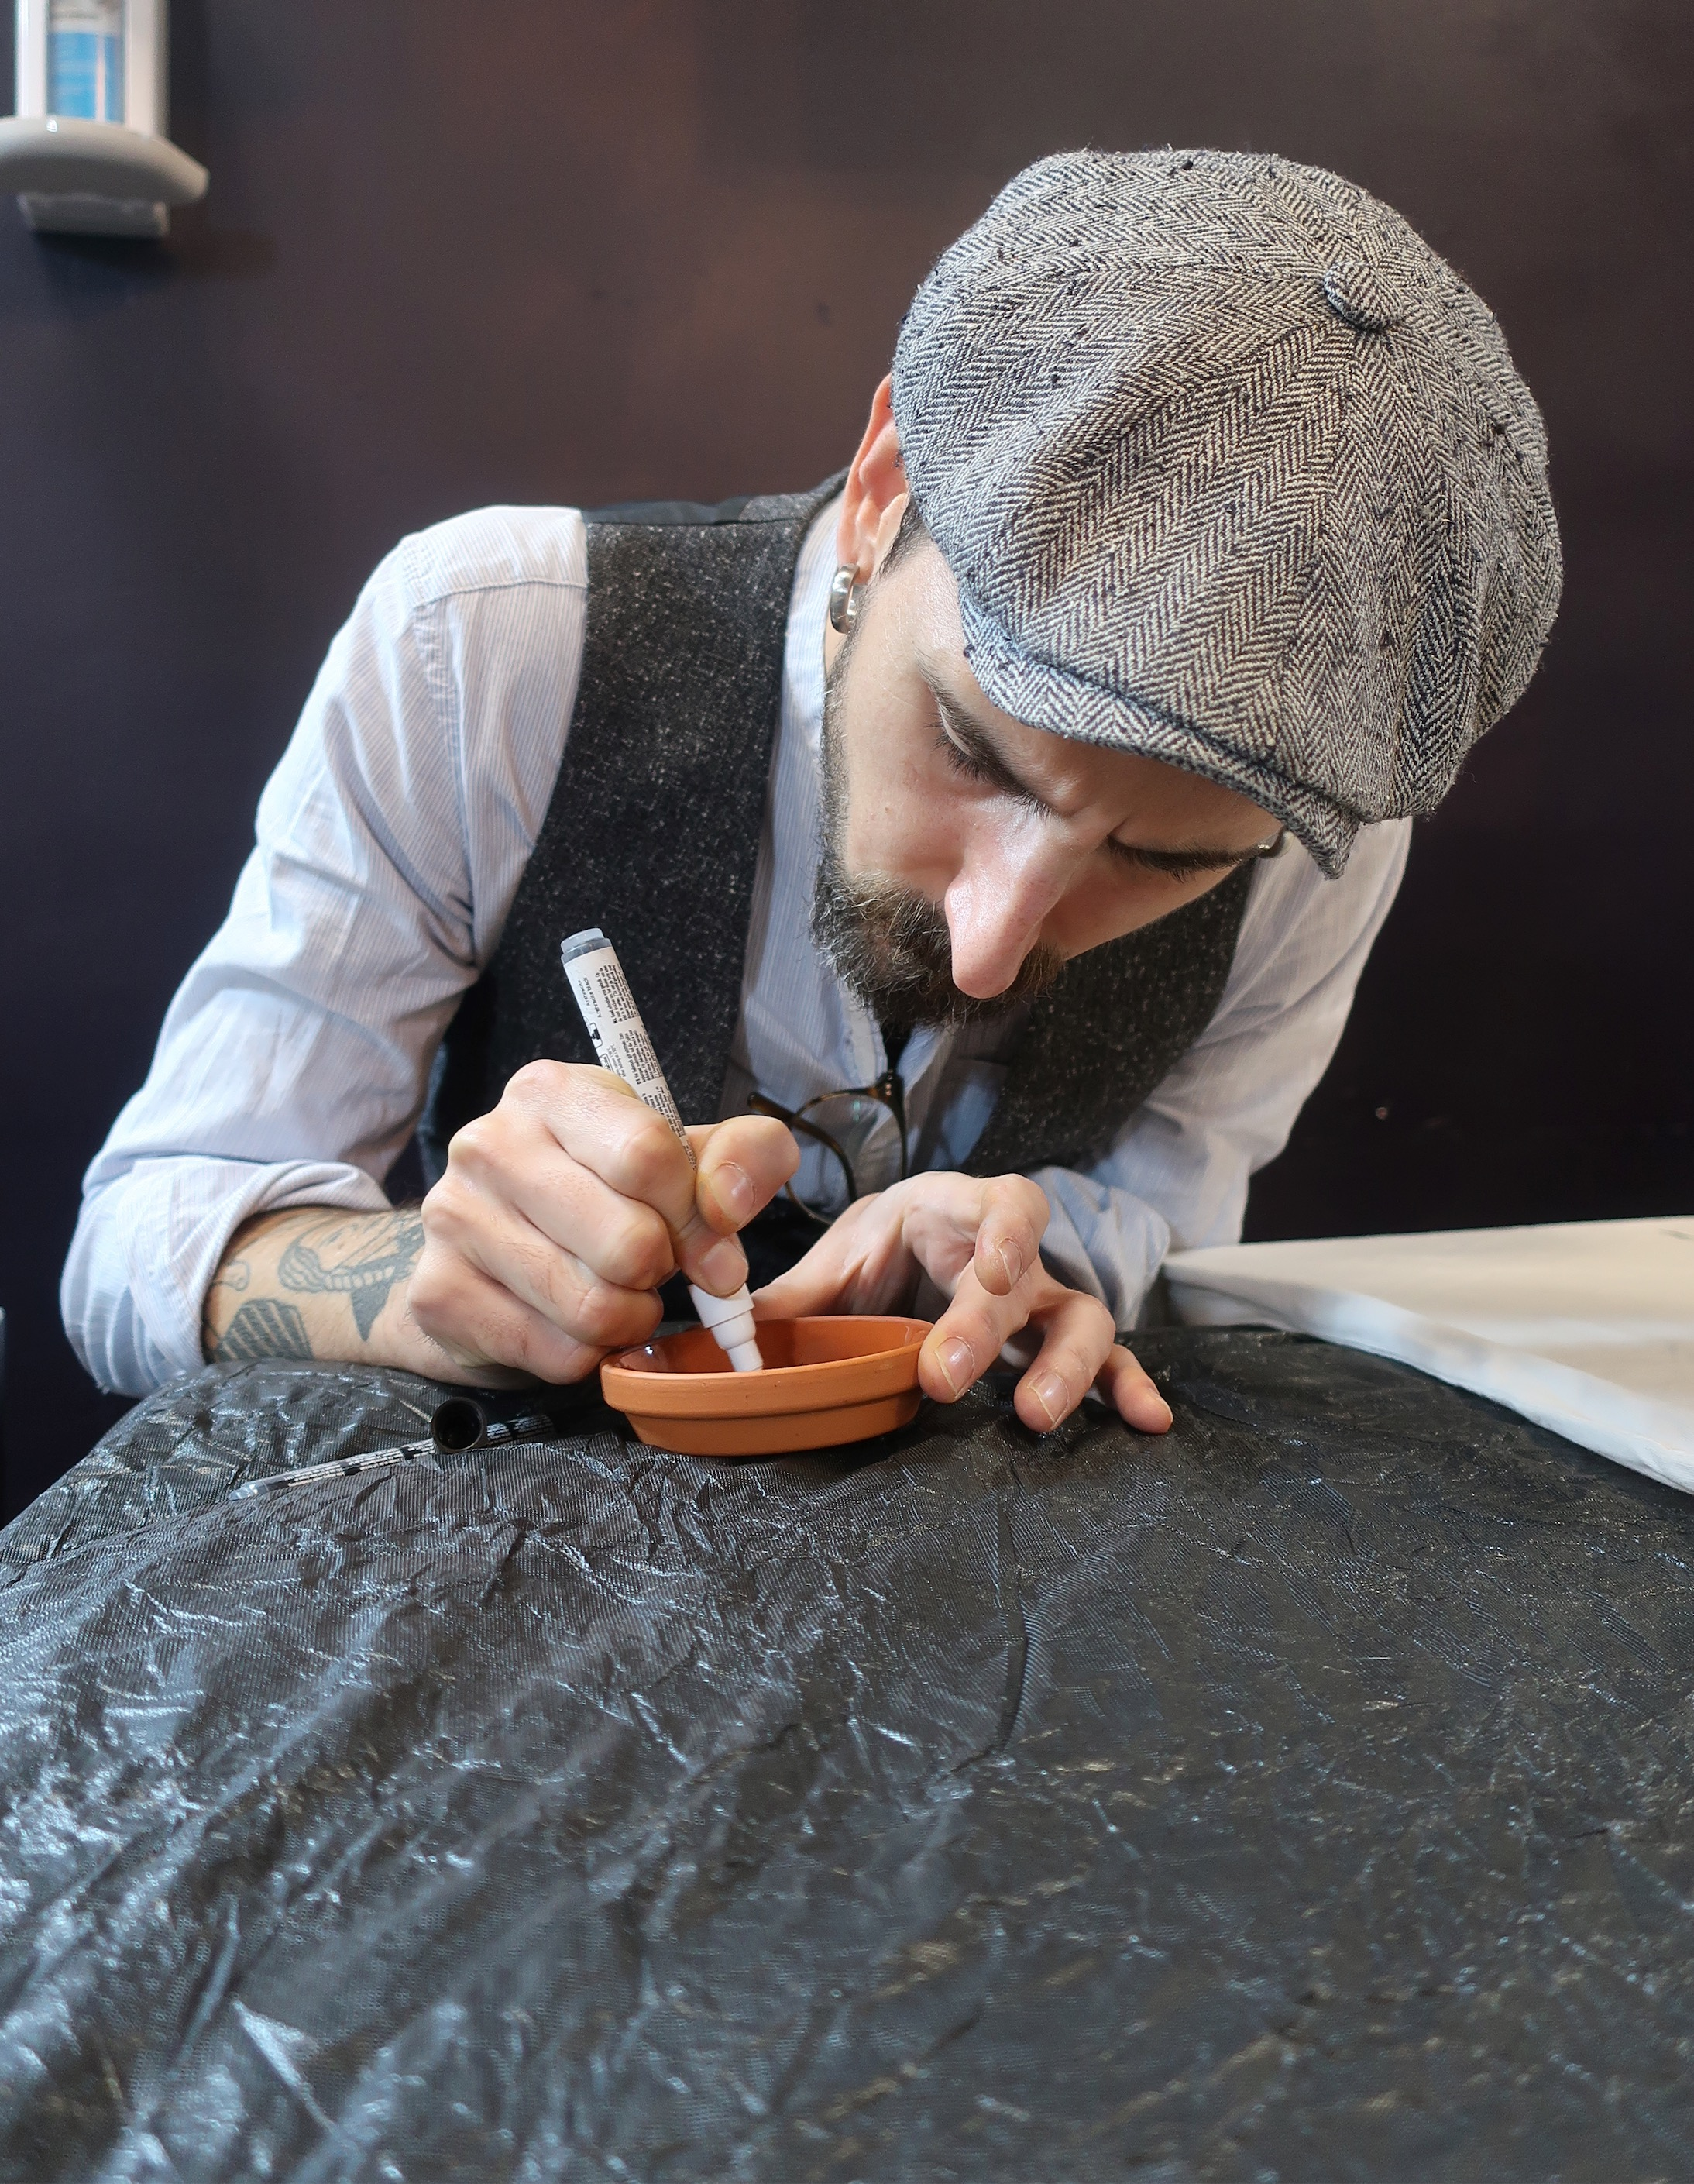 Artist Adria Deyza painting on pottery.jpeg